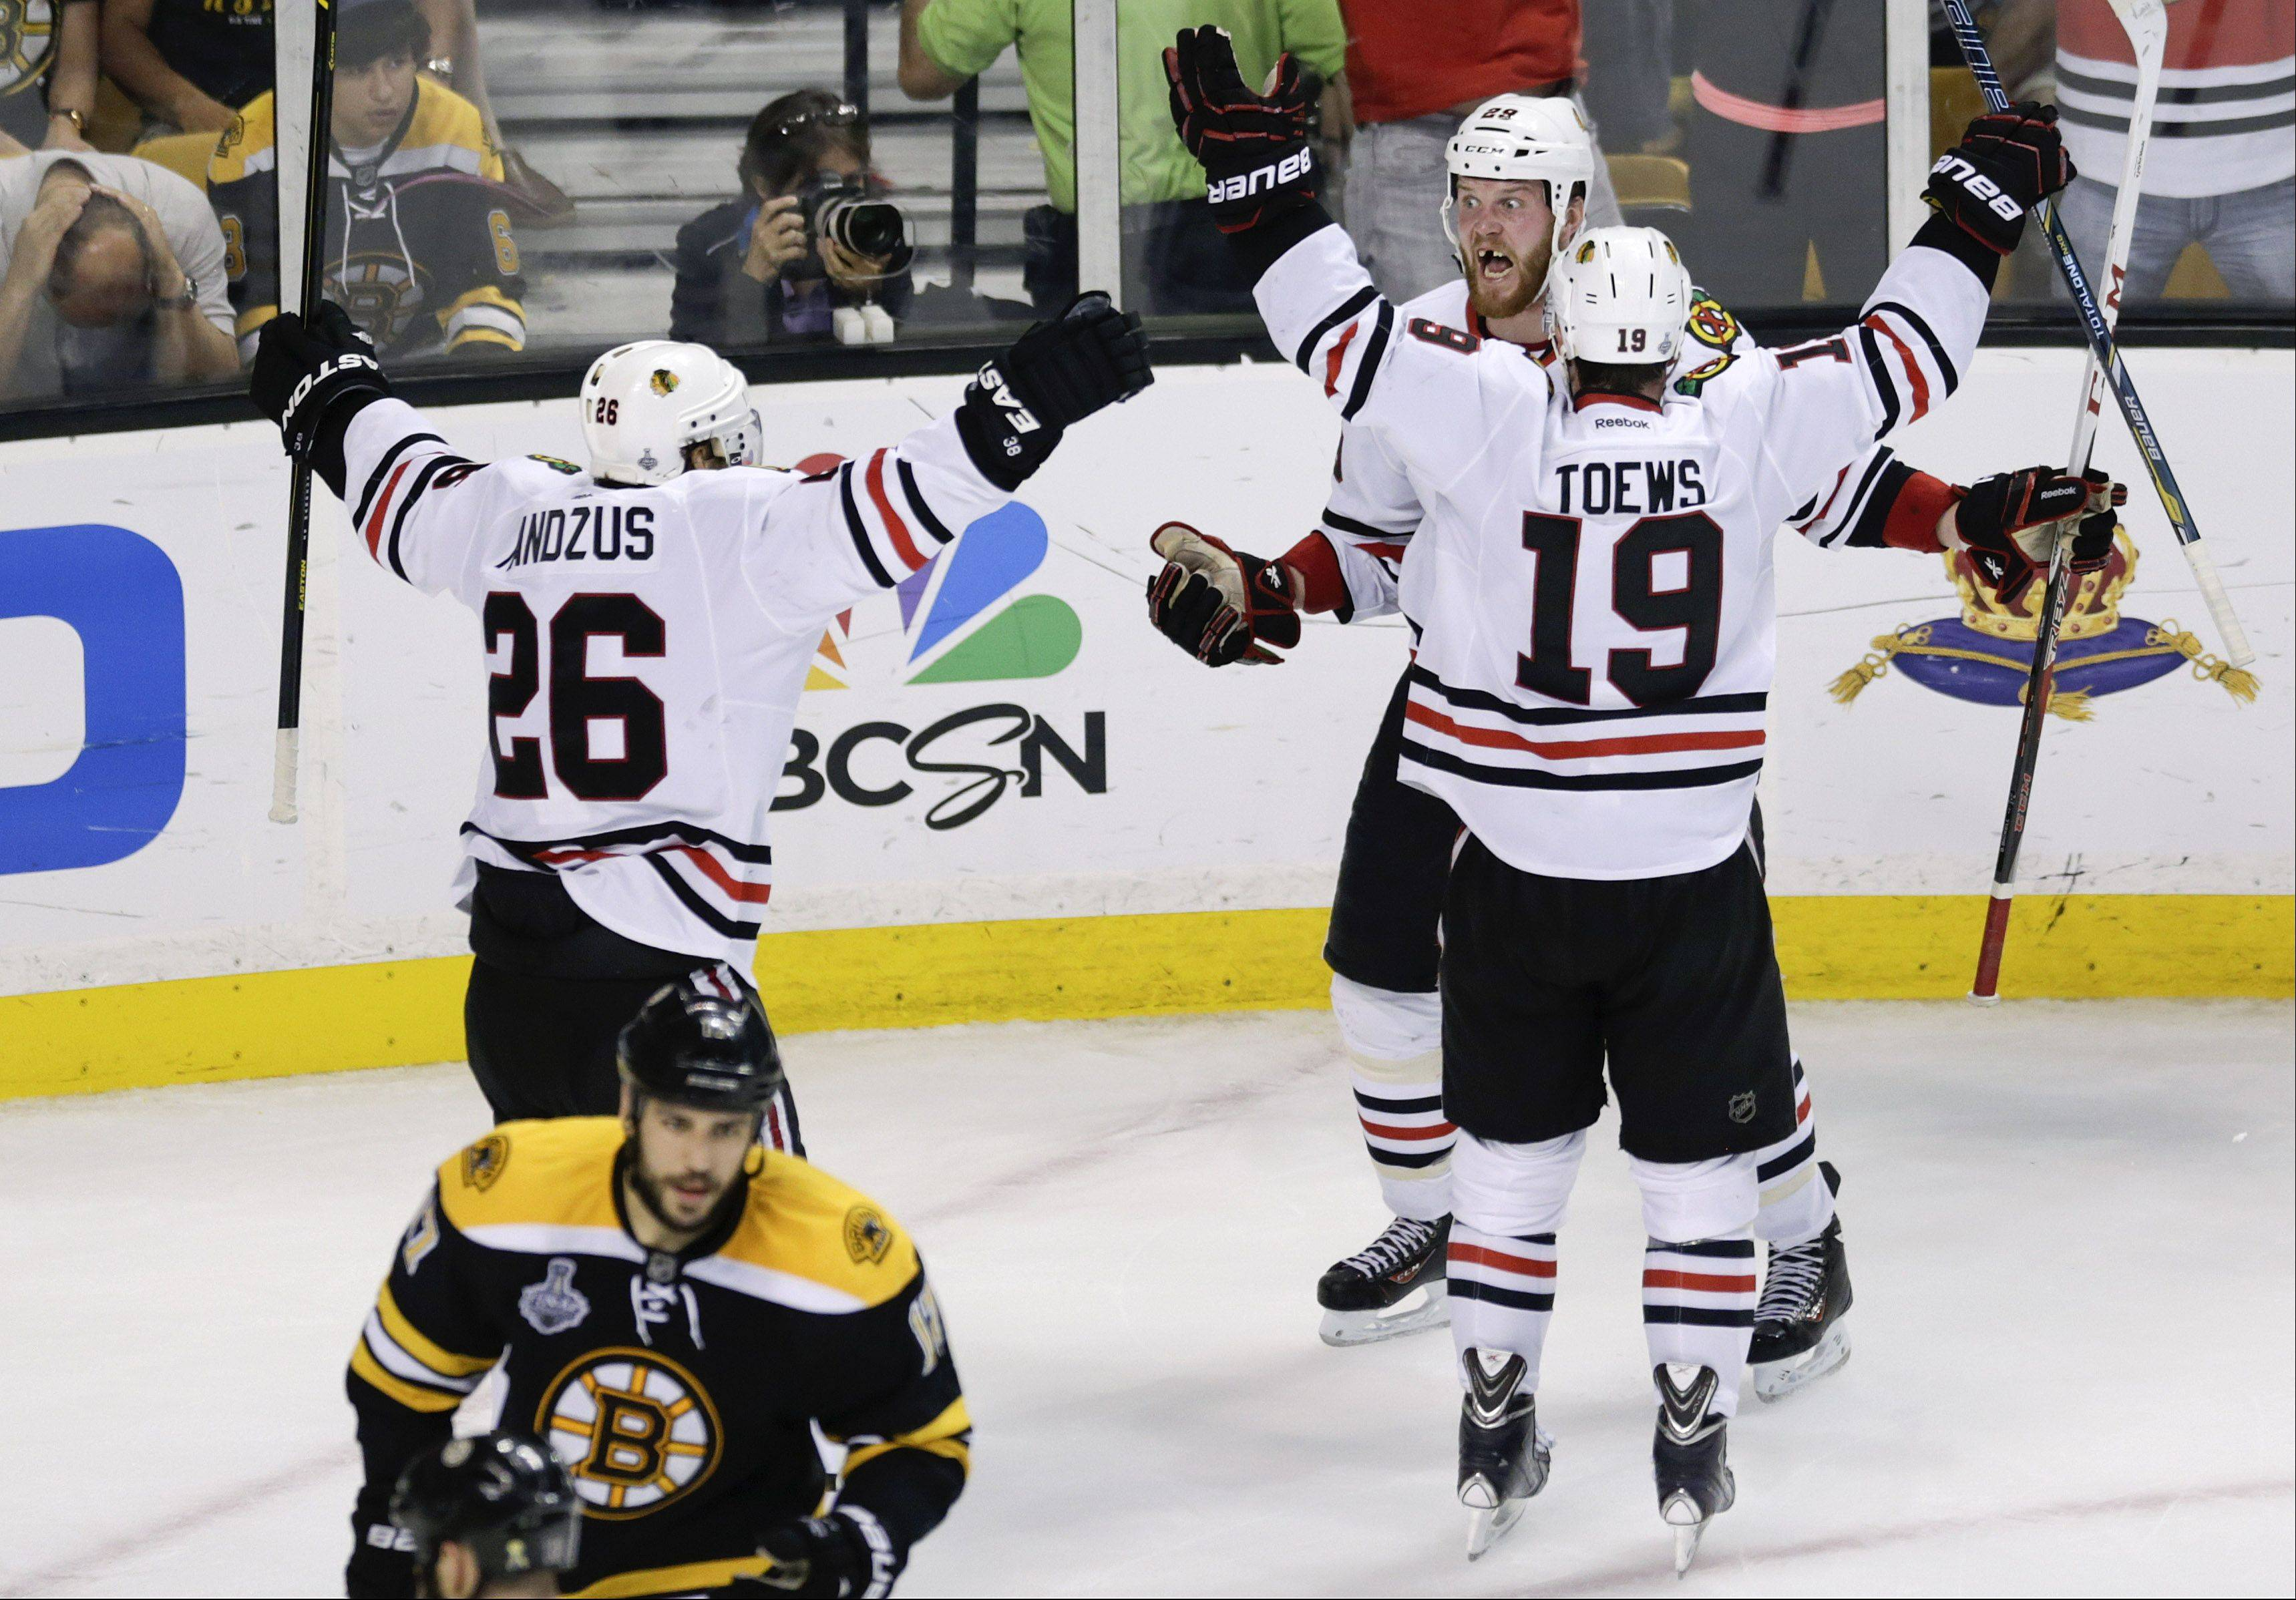 Chicago Blackhawks left wing Bryan Bickell, center, celebrates his goal with center Jonathan Toews (19) and center Michal Handzus (26), of Slovakia, during the third period in Game 6 of the Stanley Cup Finals Monday.